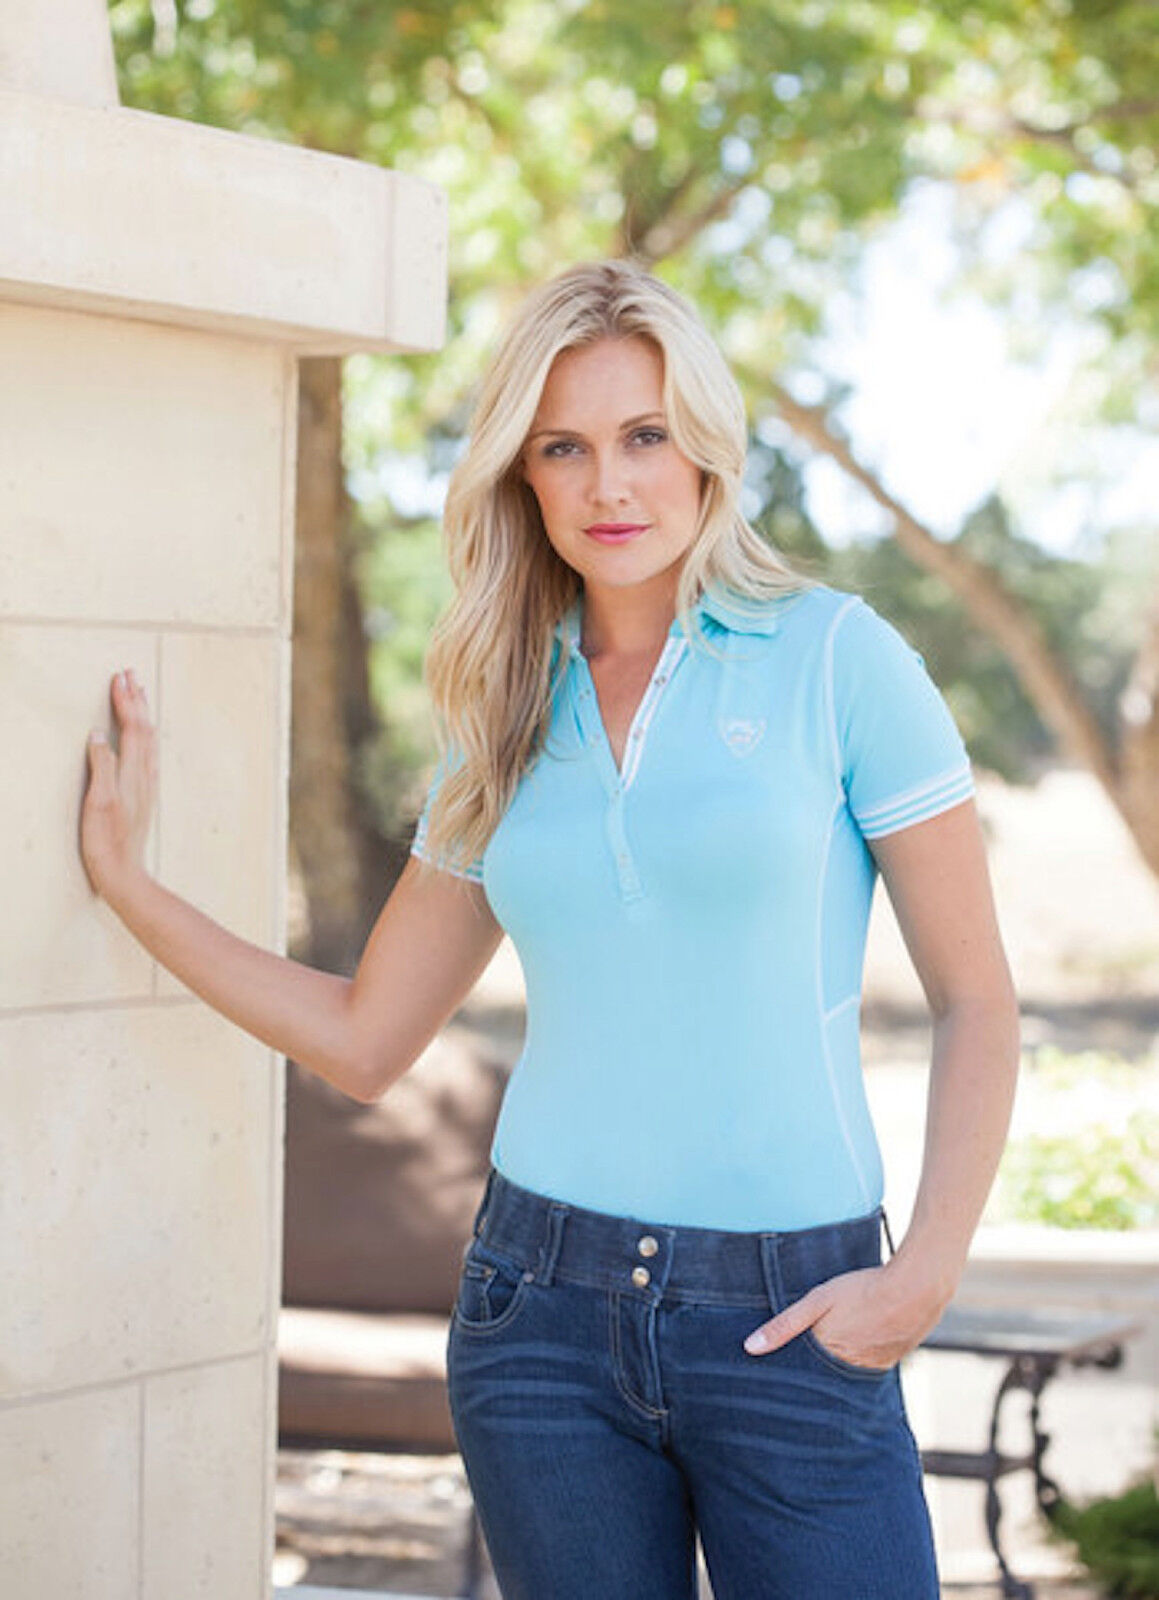 Goode Rider Ideal Polo-Turquoise-L Sport Polo-Turquoise-L Ideal ba830f